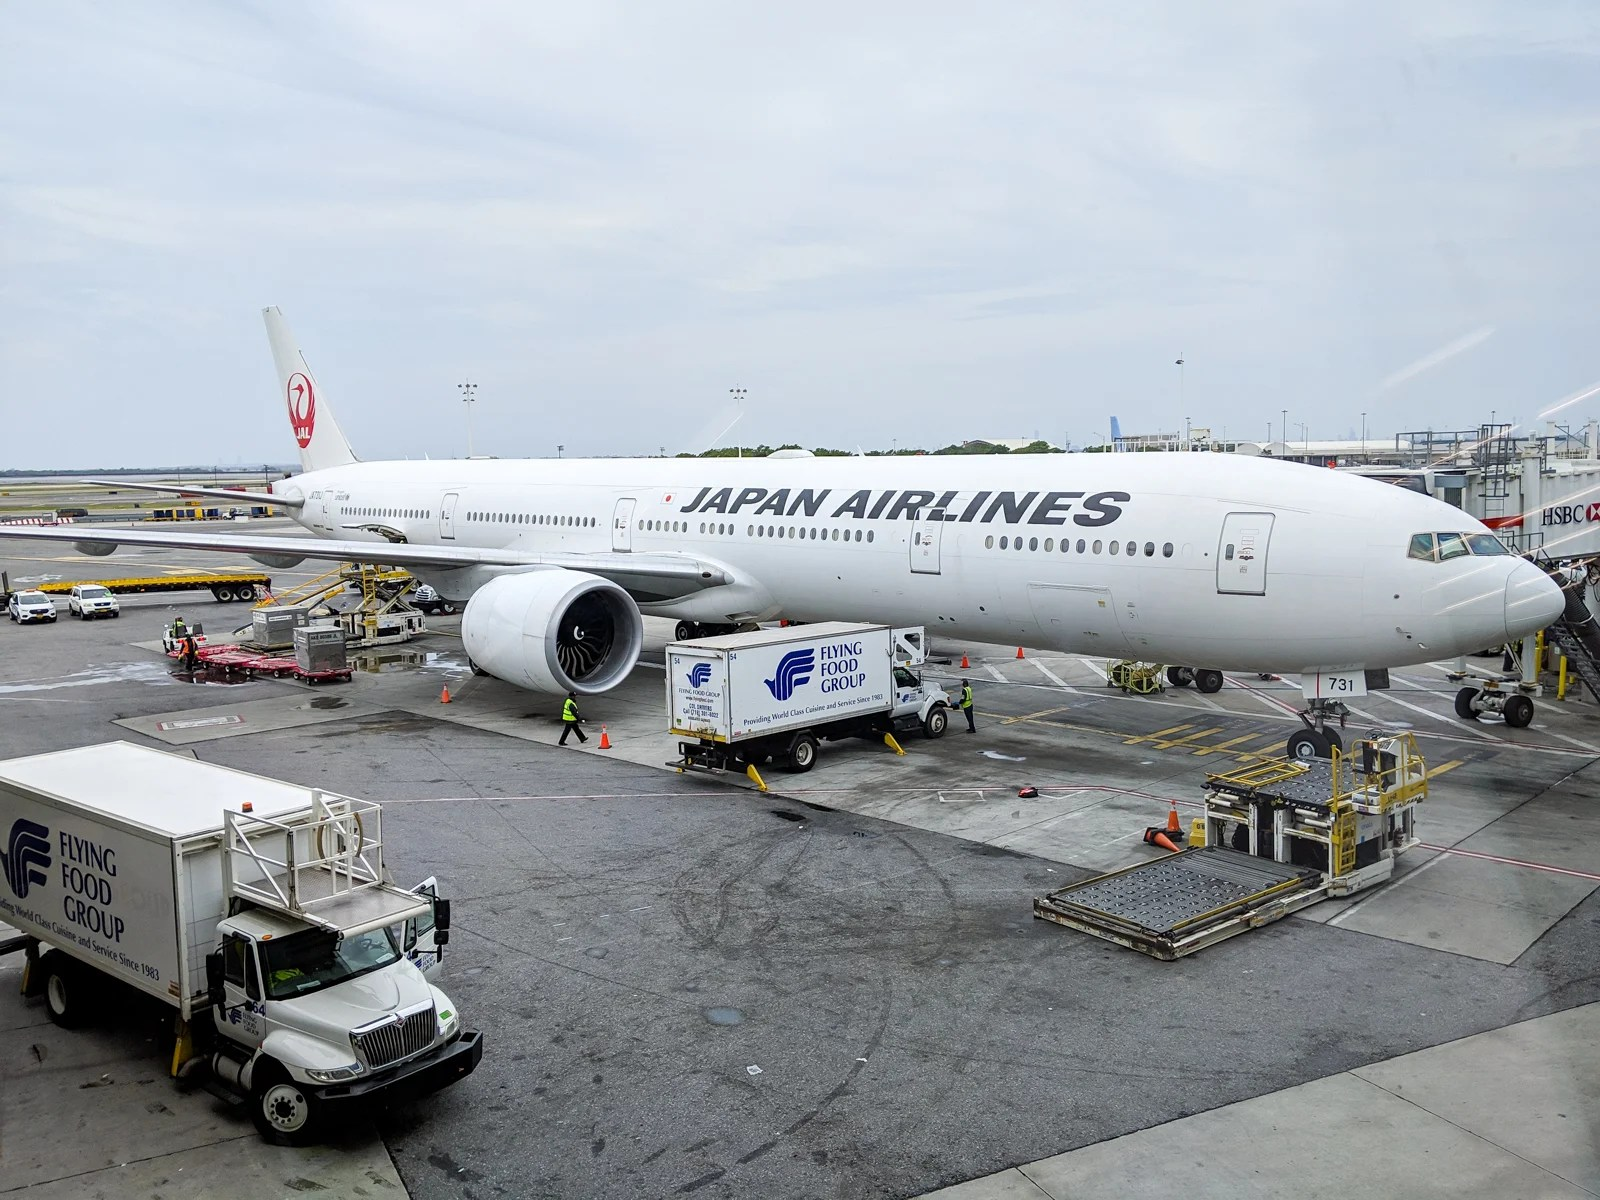 Deal alert: JAL premium economy flights have dropped to $718 round-trip